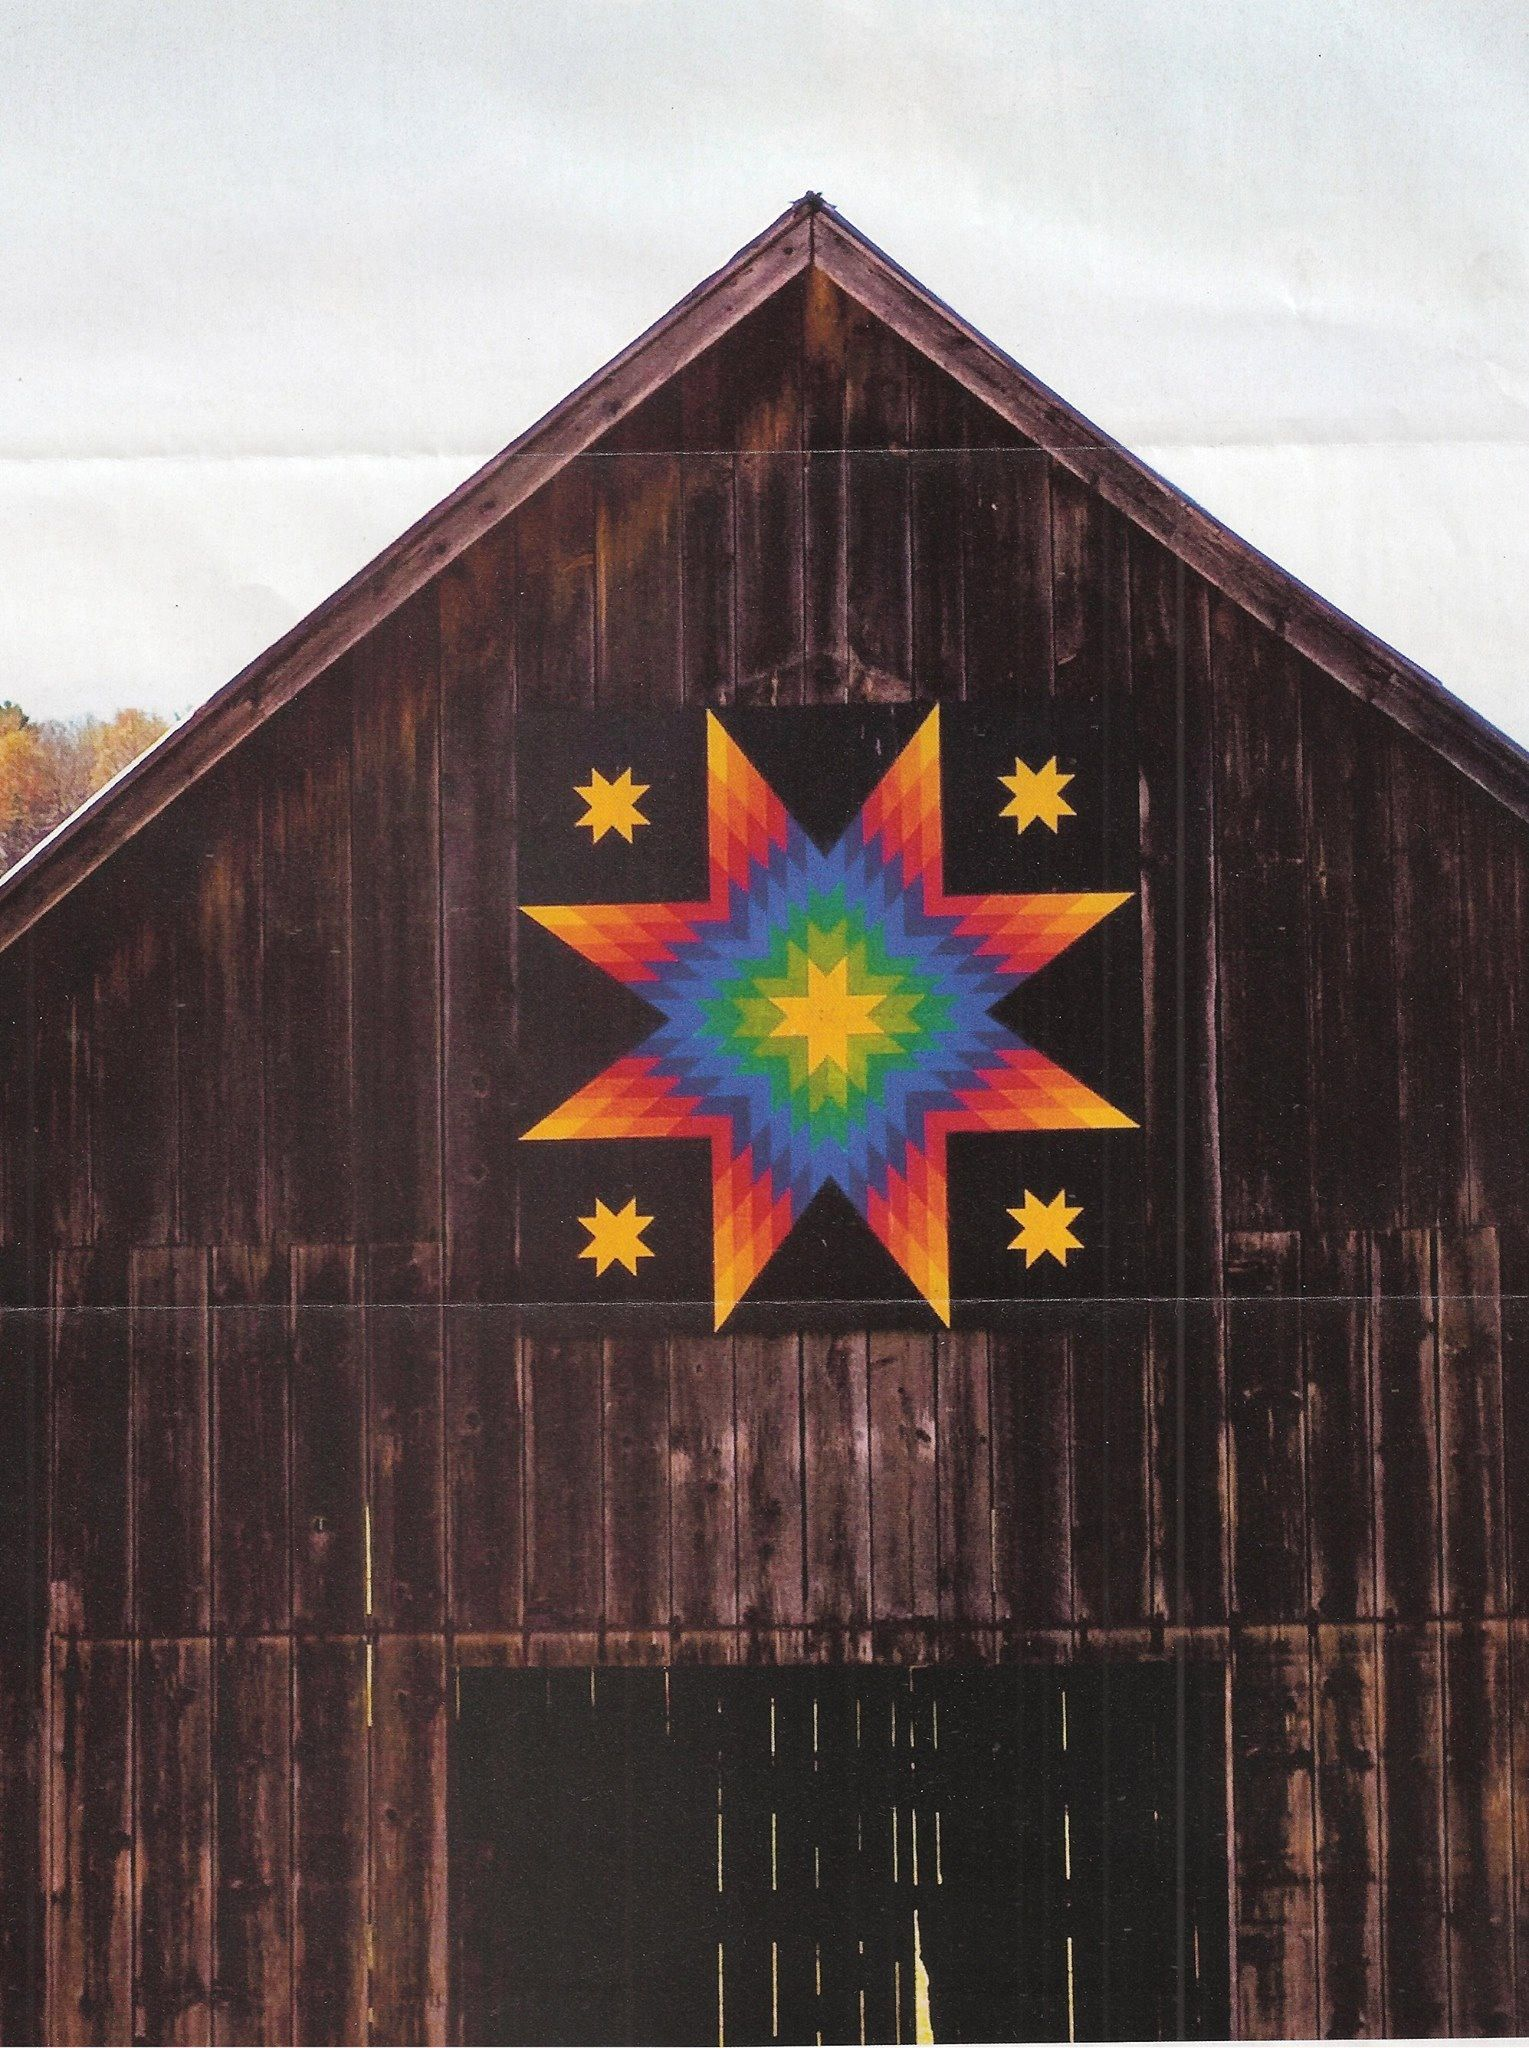 Barn quilt | Painted barn quilts, Barn signs, Barn quilt ...